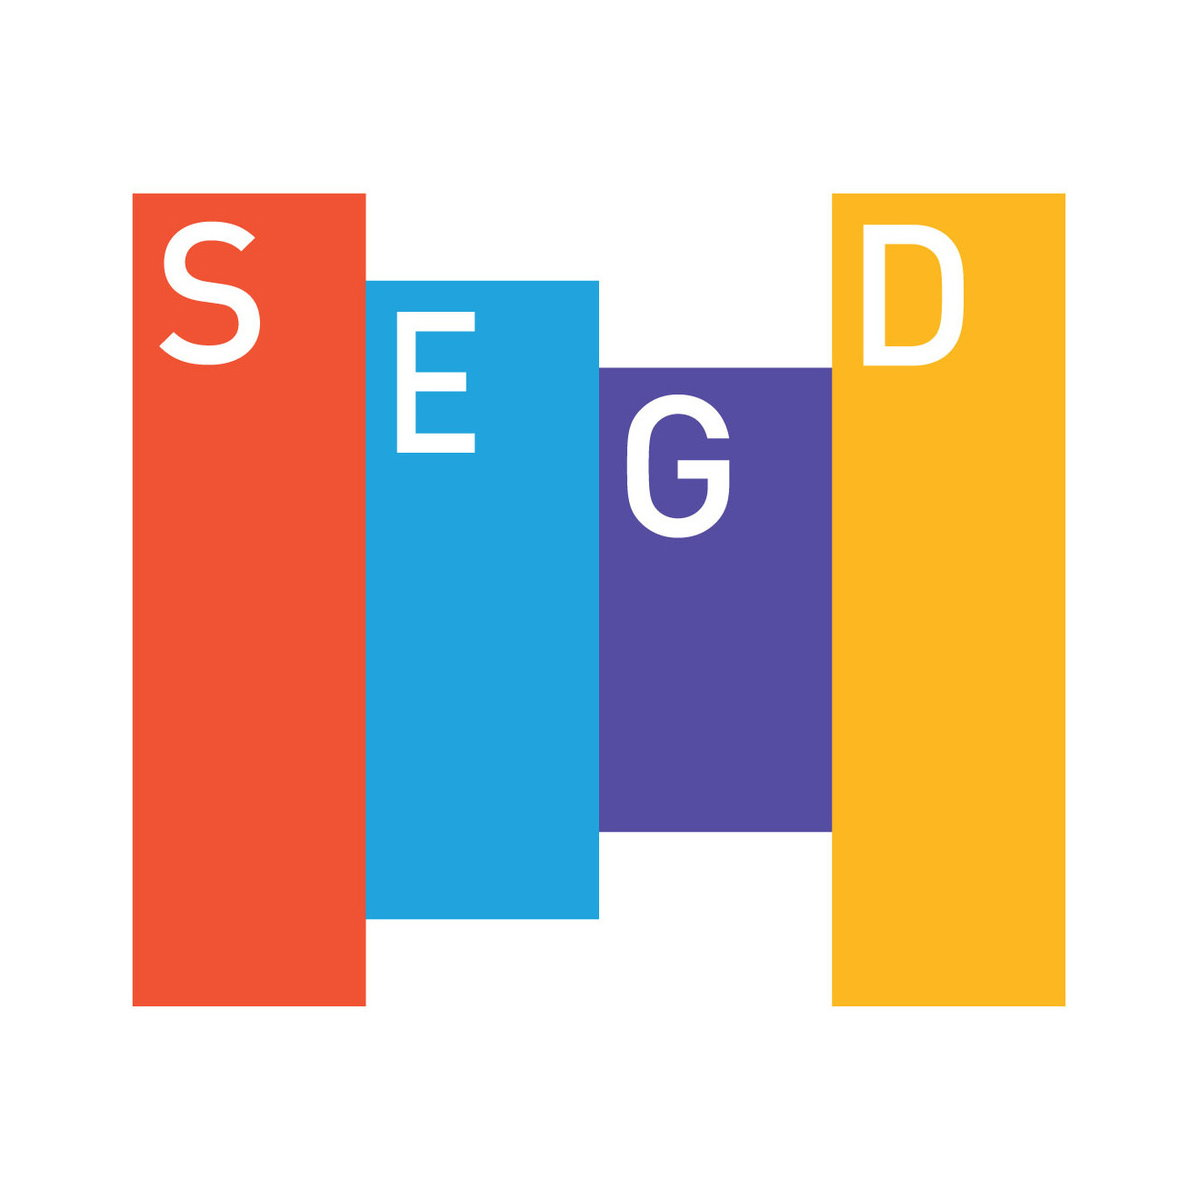 From Museums to Beyond - SEGD's 2016 Exhibition and Experience Design Event